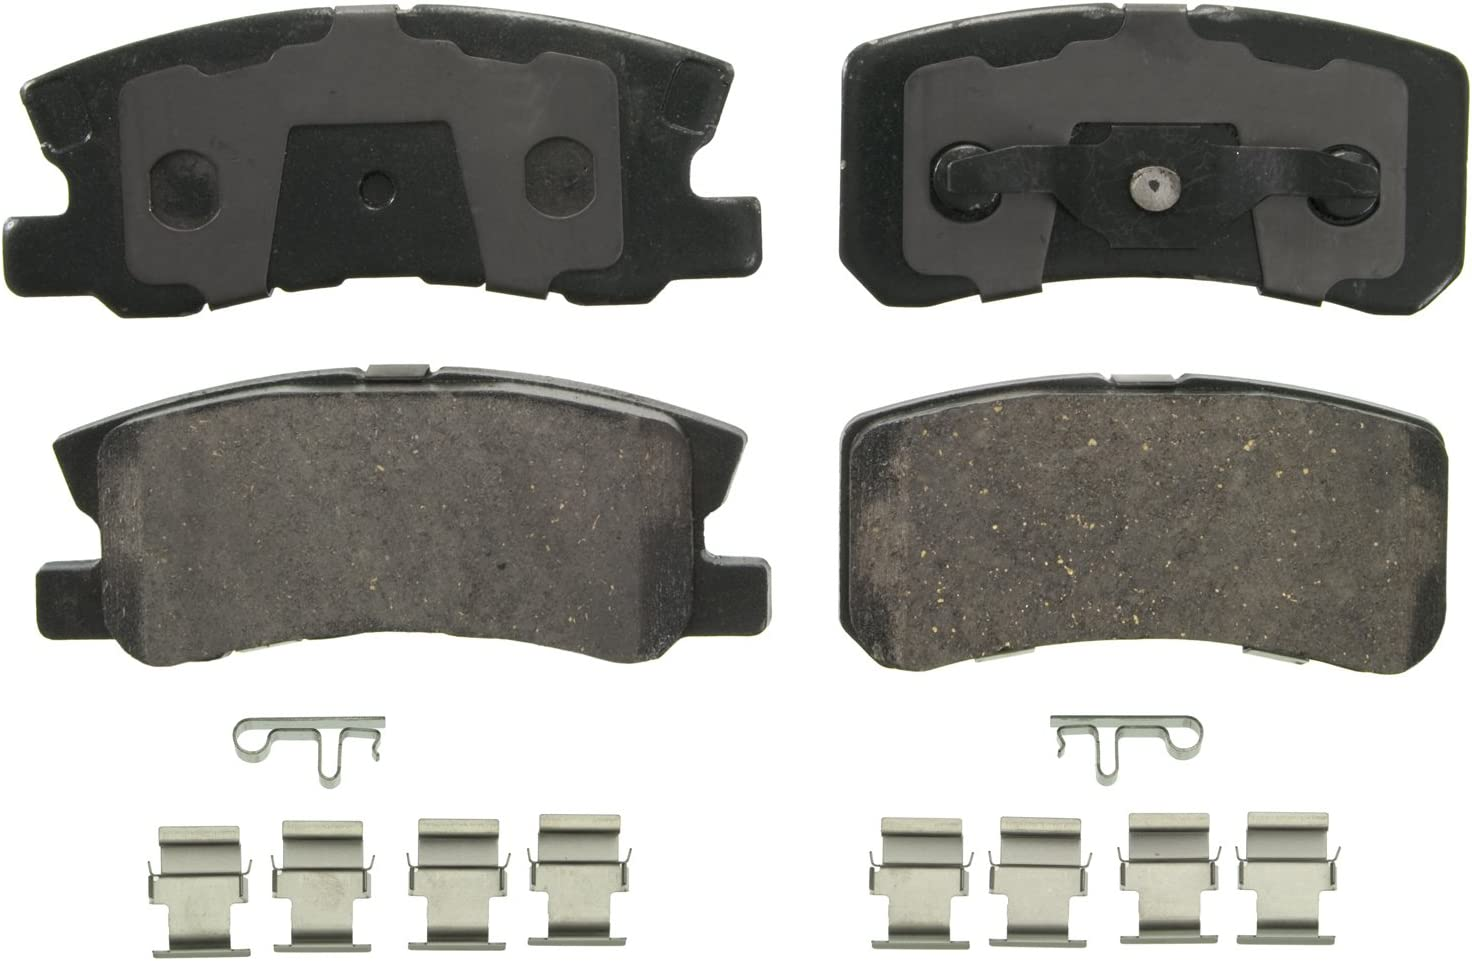 Outlander; Rear Bosch BC1037 QuietCast Premium Ceramic Disc Brake Pad Set For Select Chrysler 200 Patriot; Mitsubishi Lancer Caliber; Jeep Compass Sebring; Dodge Avenger